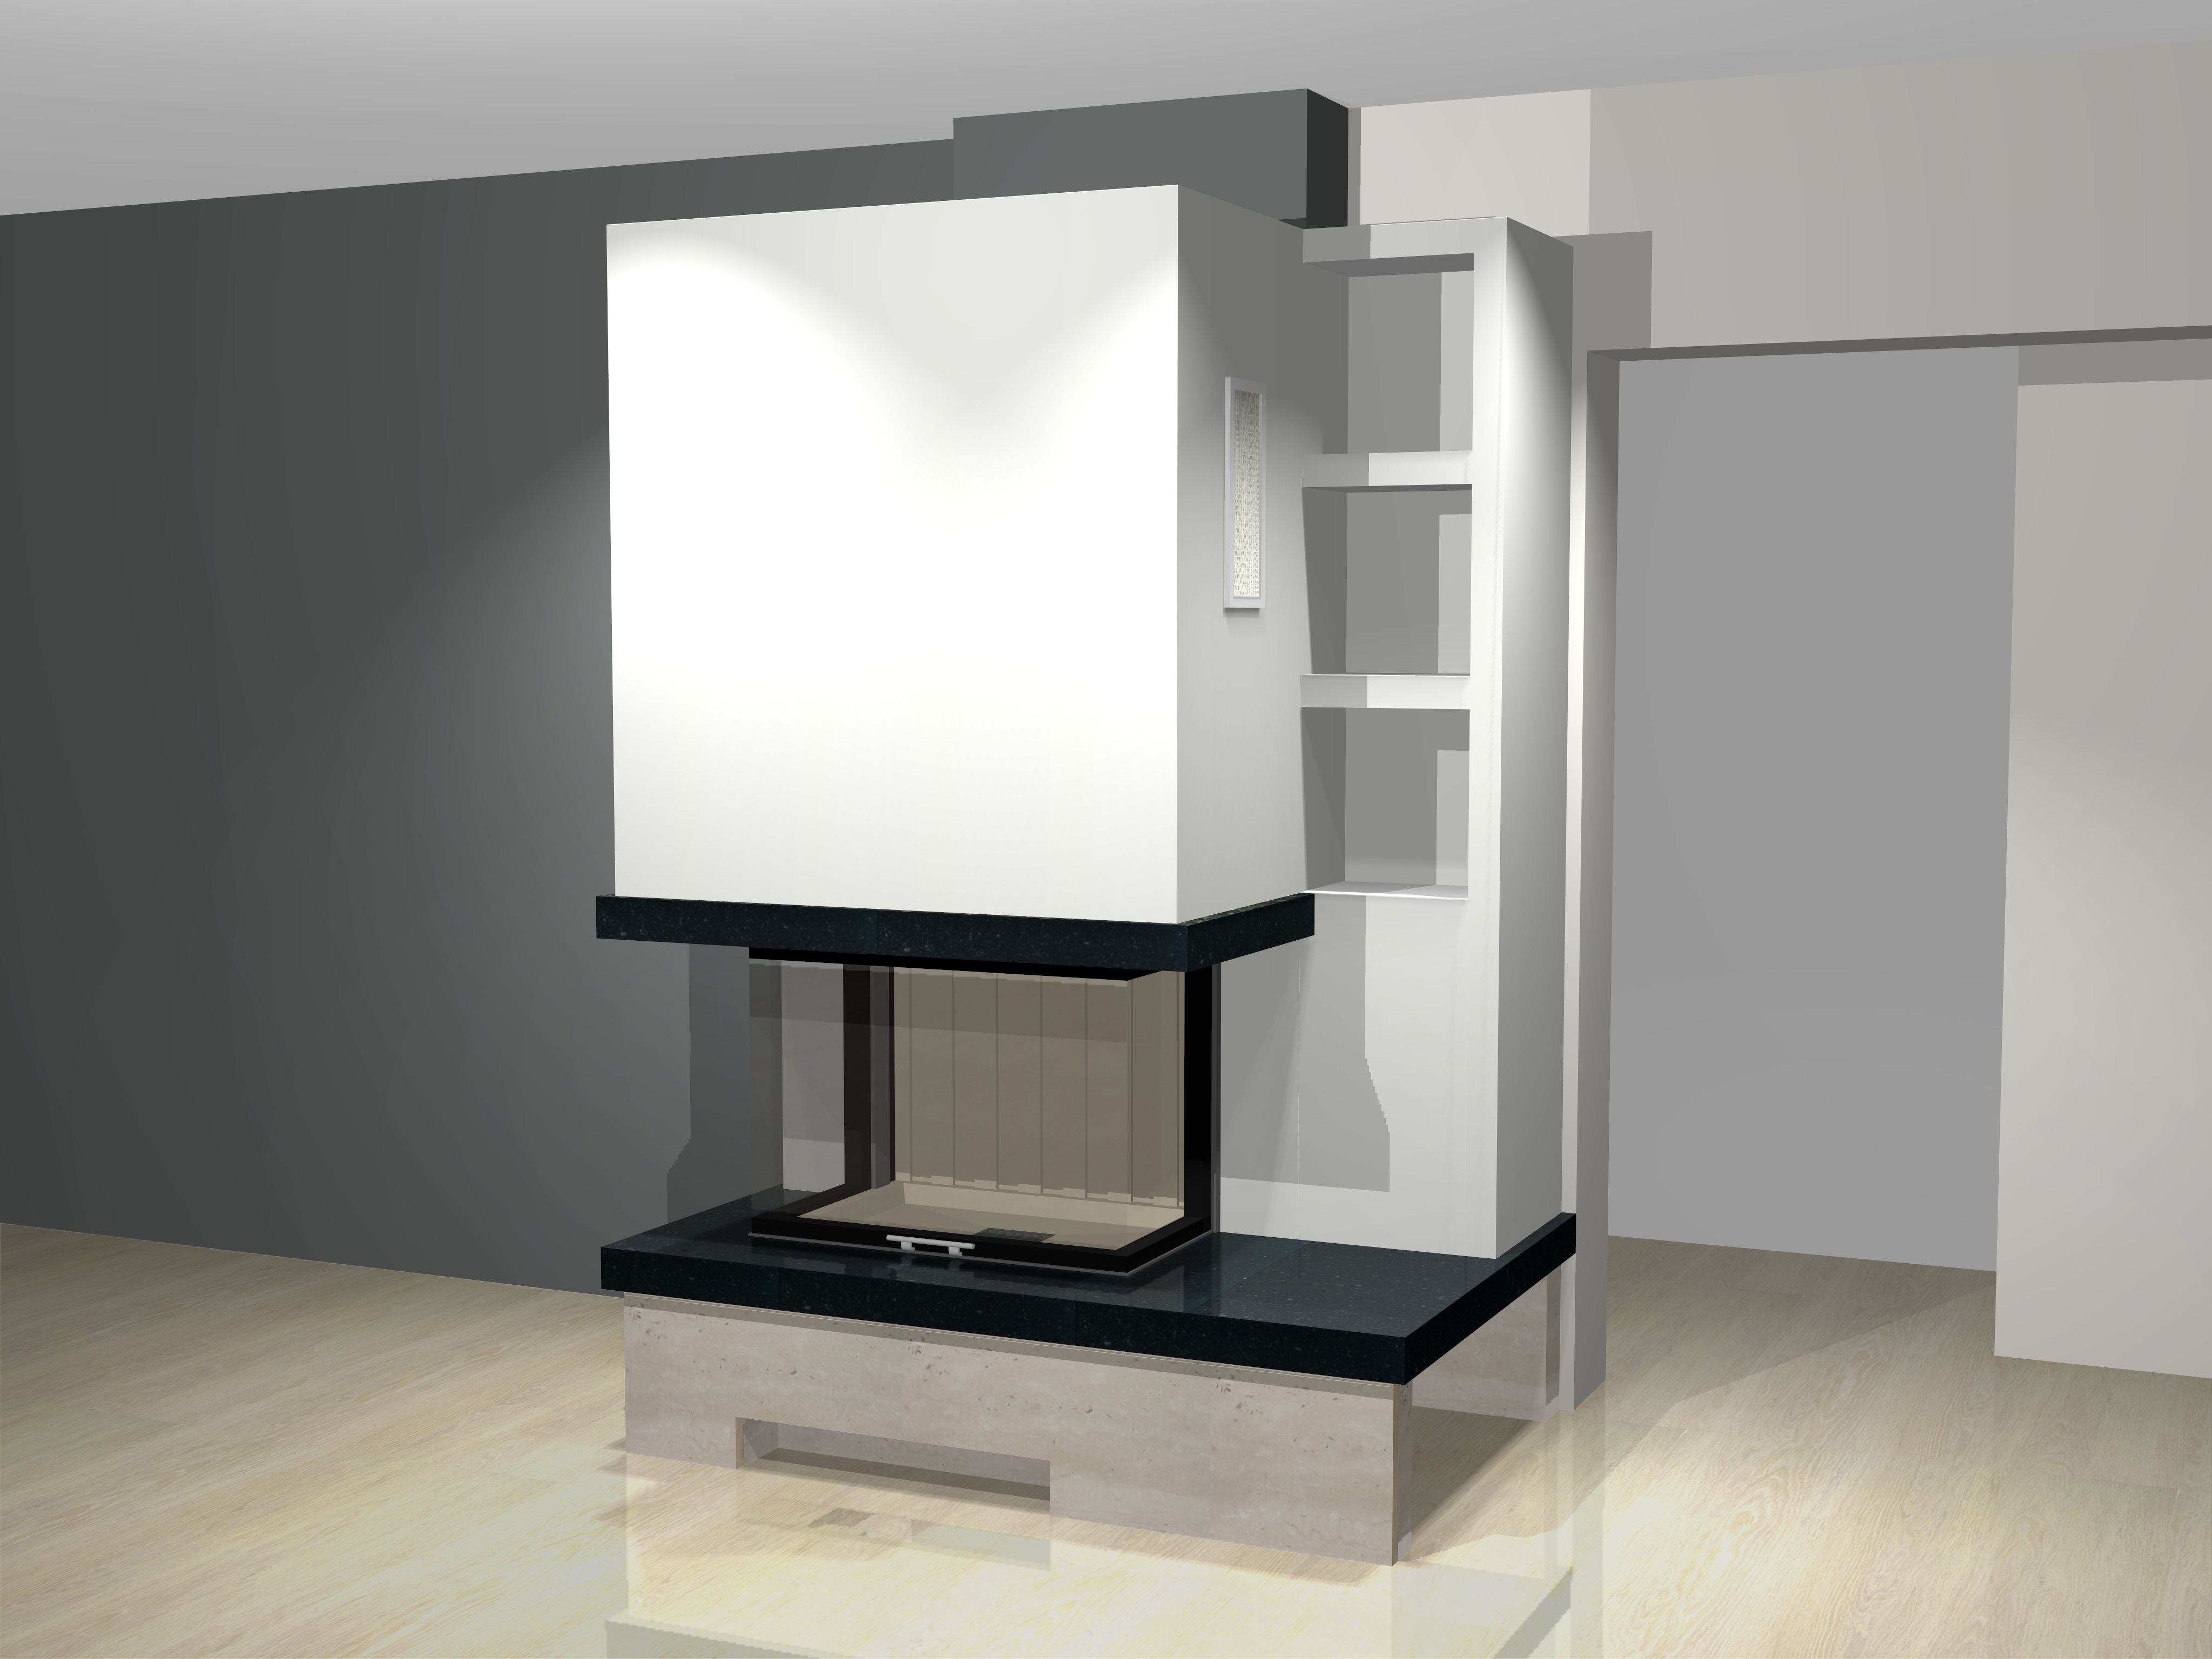 dreiseitiger kamin c 06 1 mit spartherm mit montage www. Black Bedroom Furniture Sets. Home Design Ideas